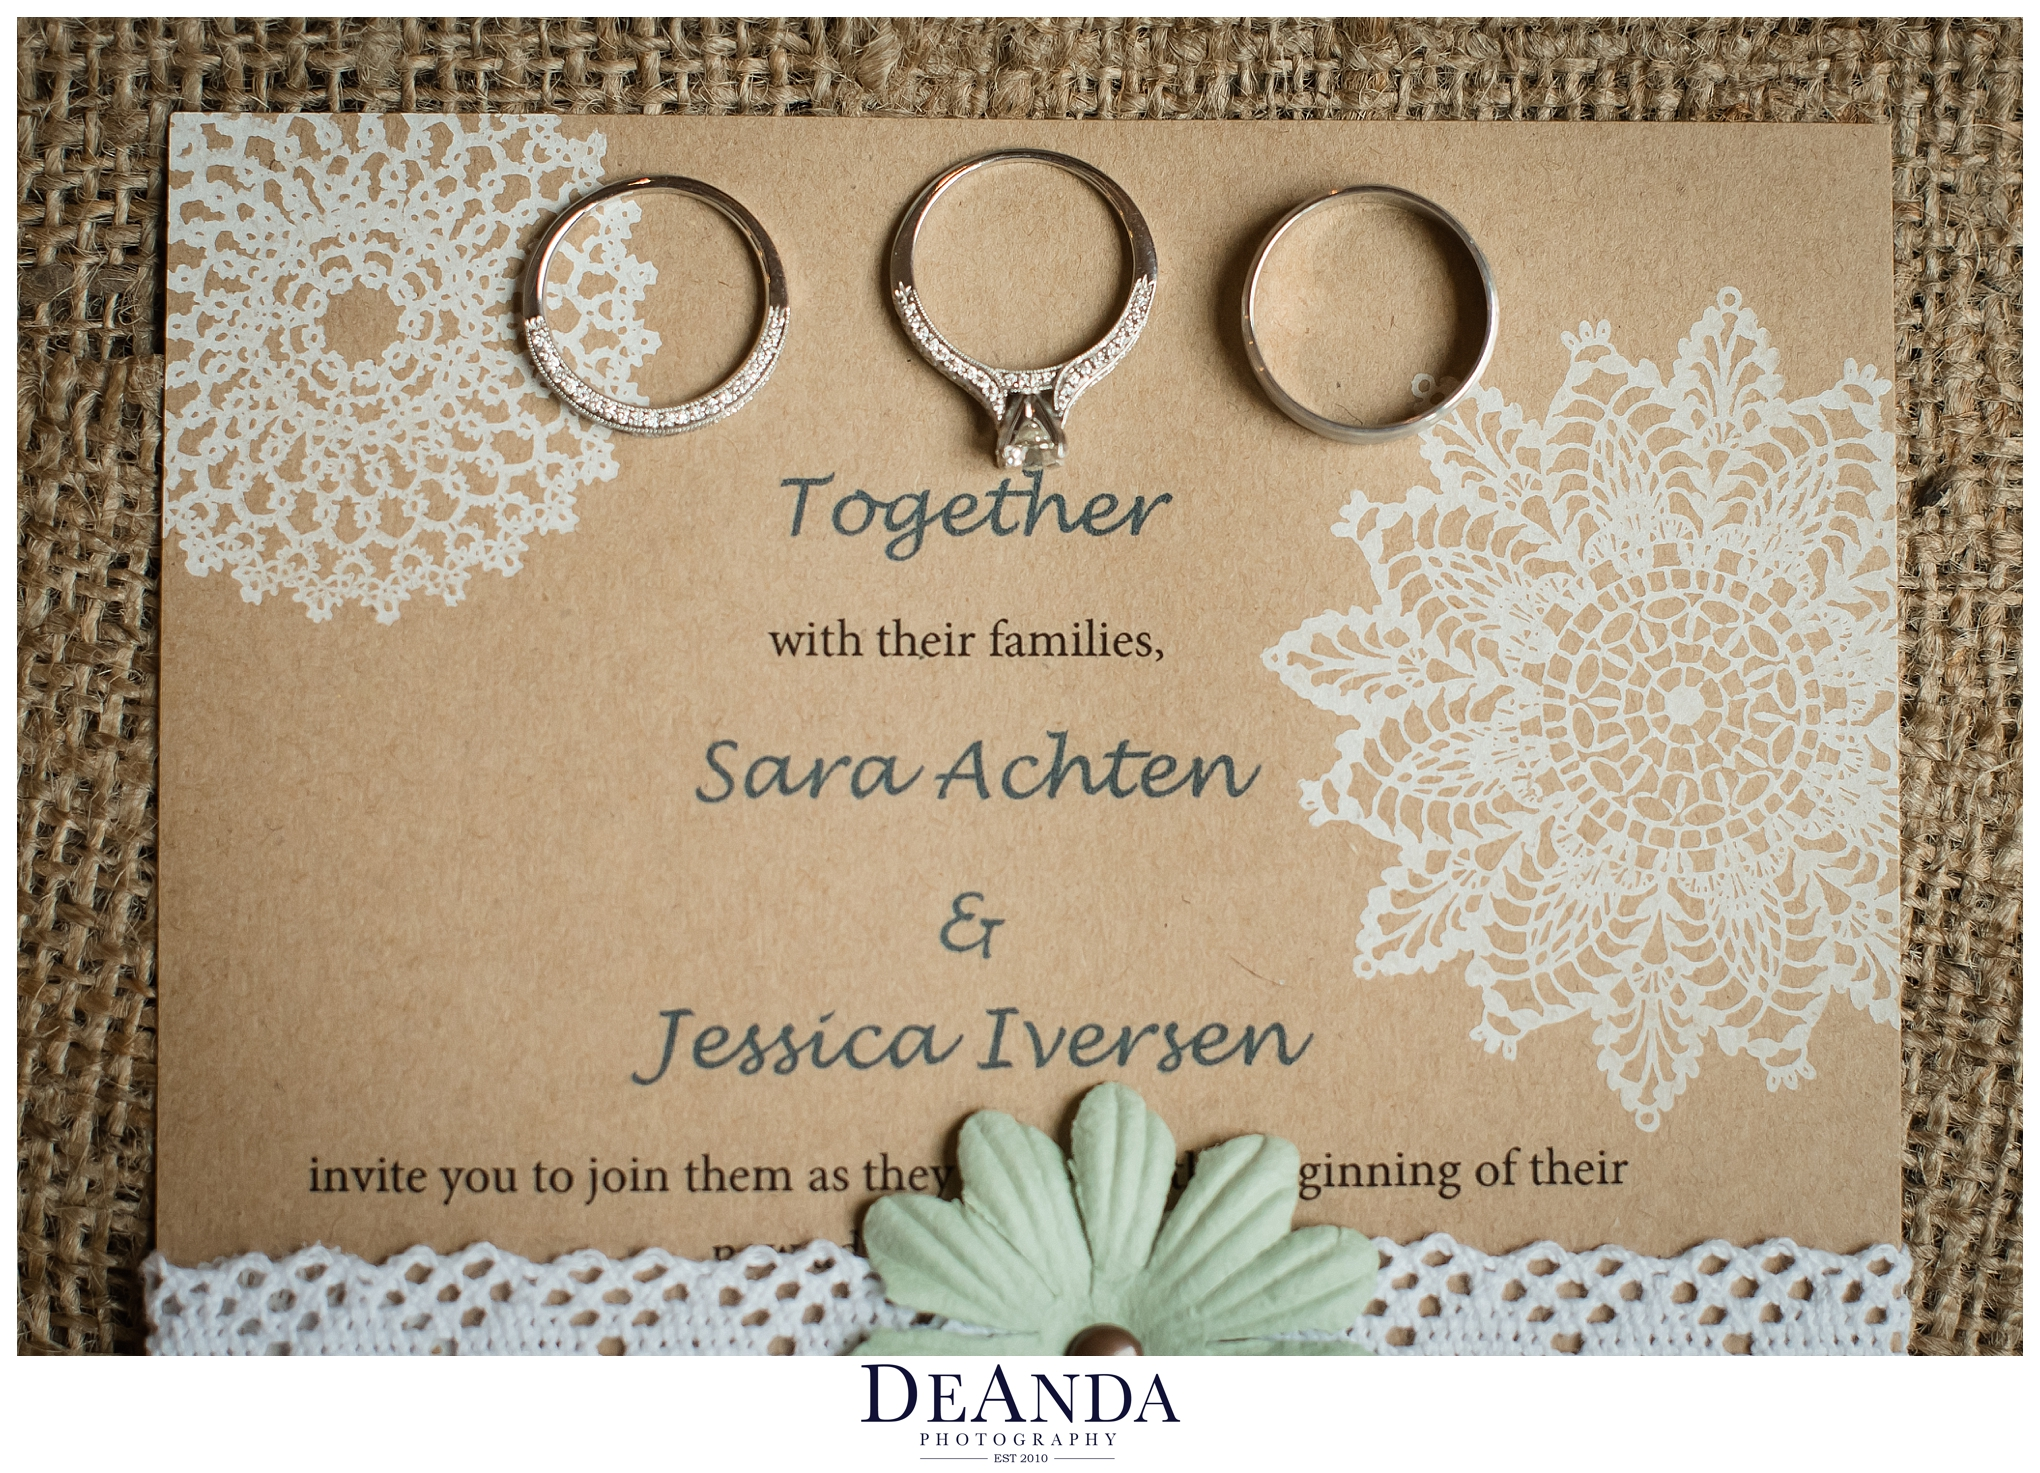 brides wedding rings on invite